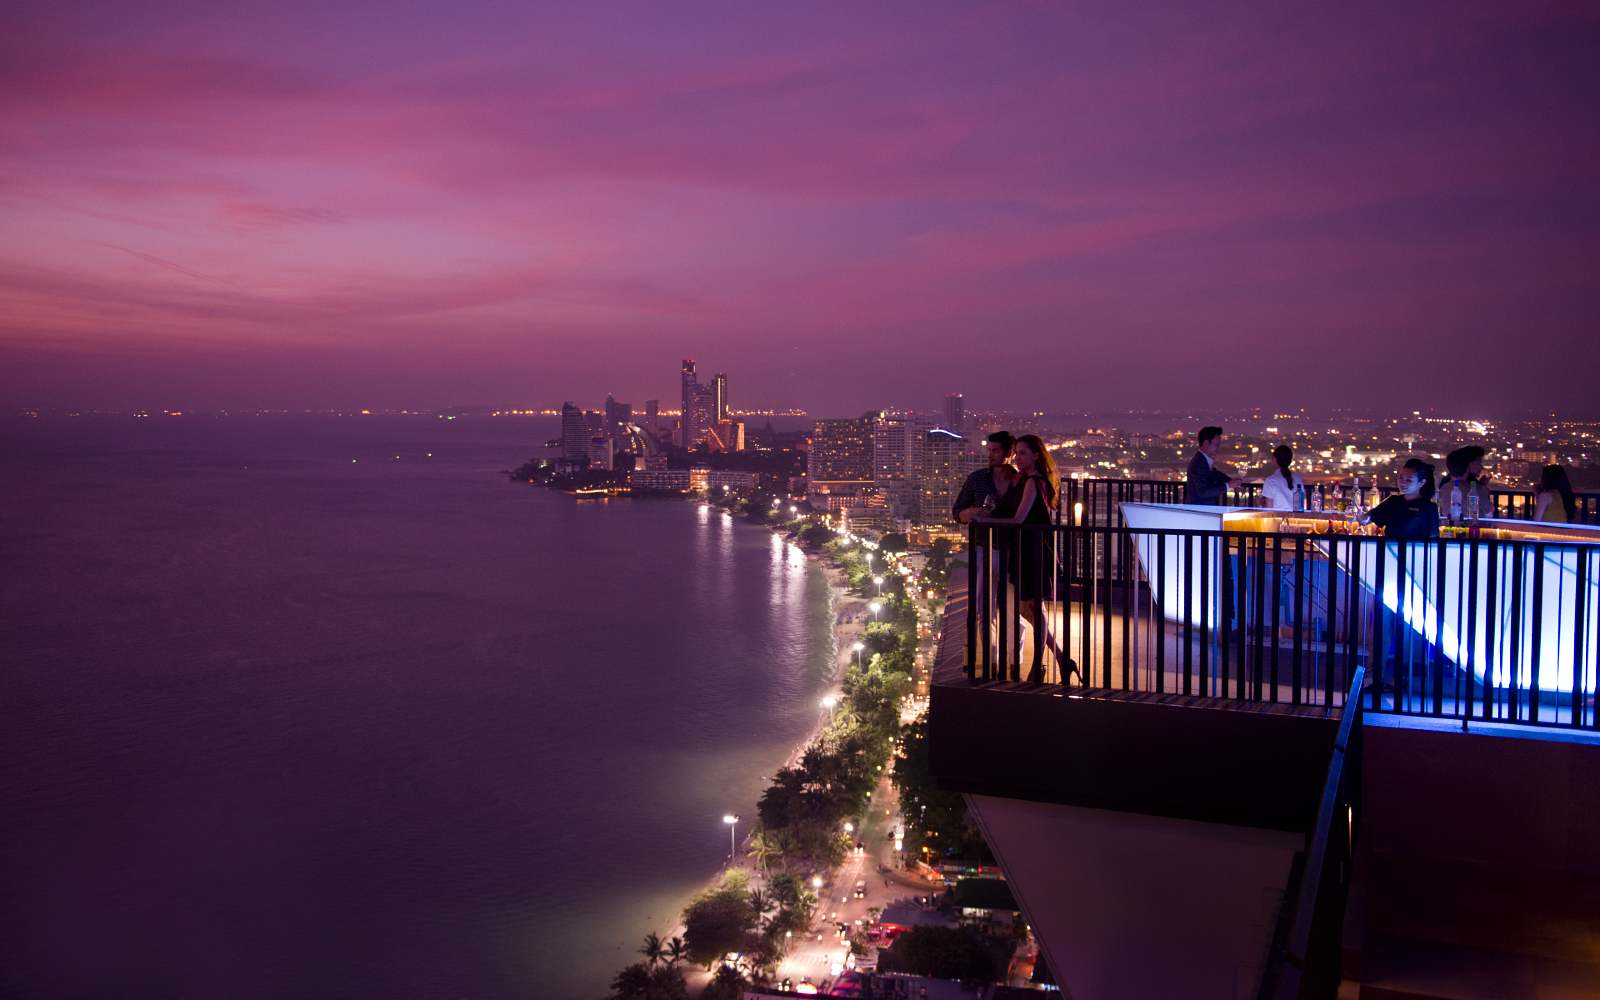 Horizon Rooftop bar at Hilton, two people enjoy the view over Pattaya